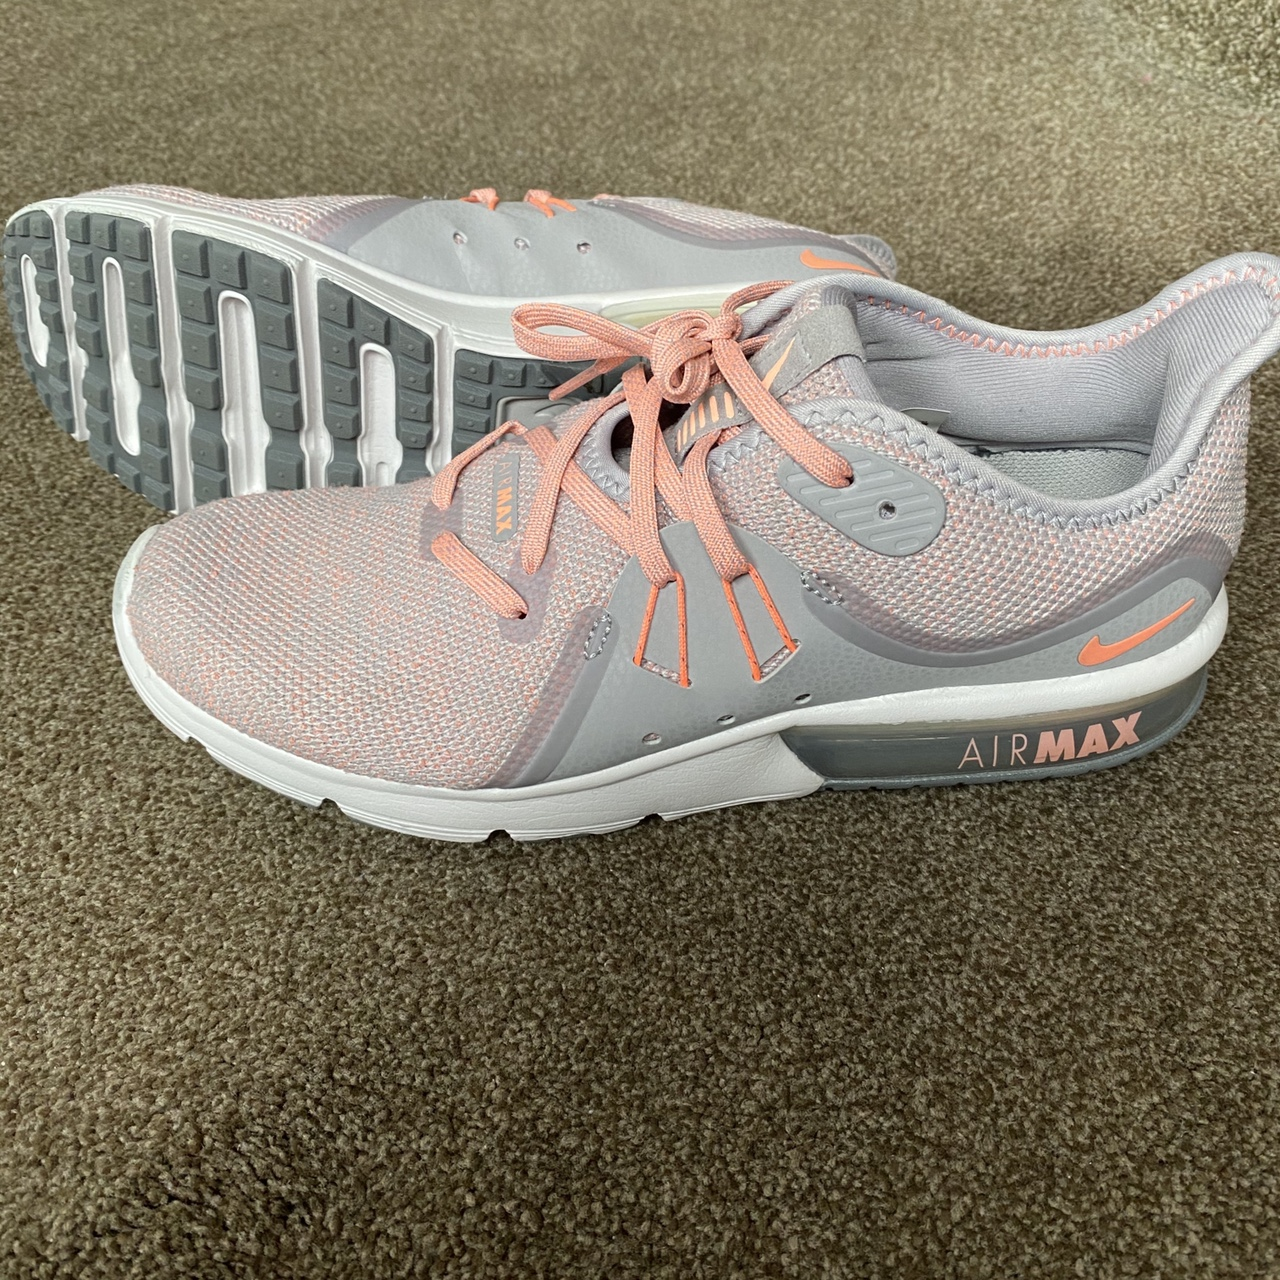 Nike Air Max Super comfy trainers and